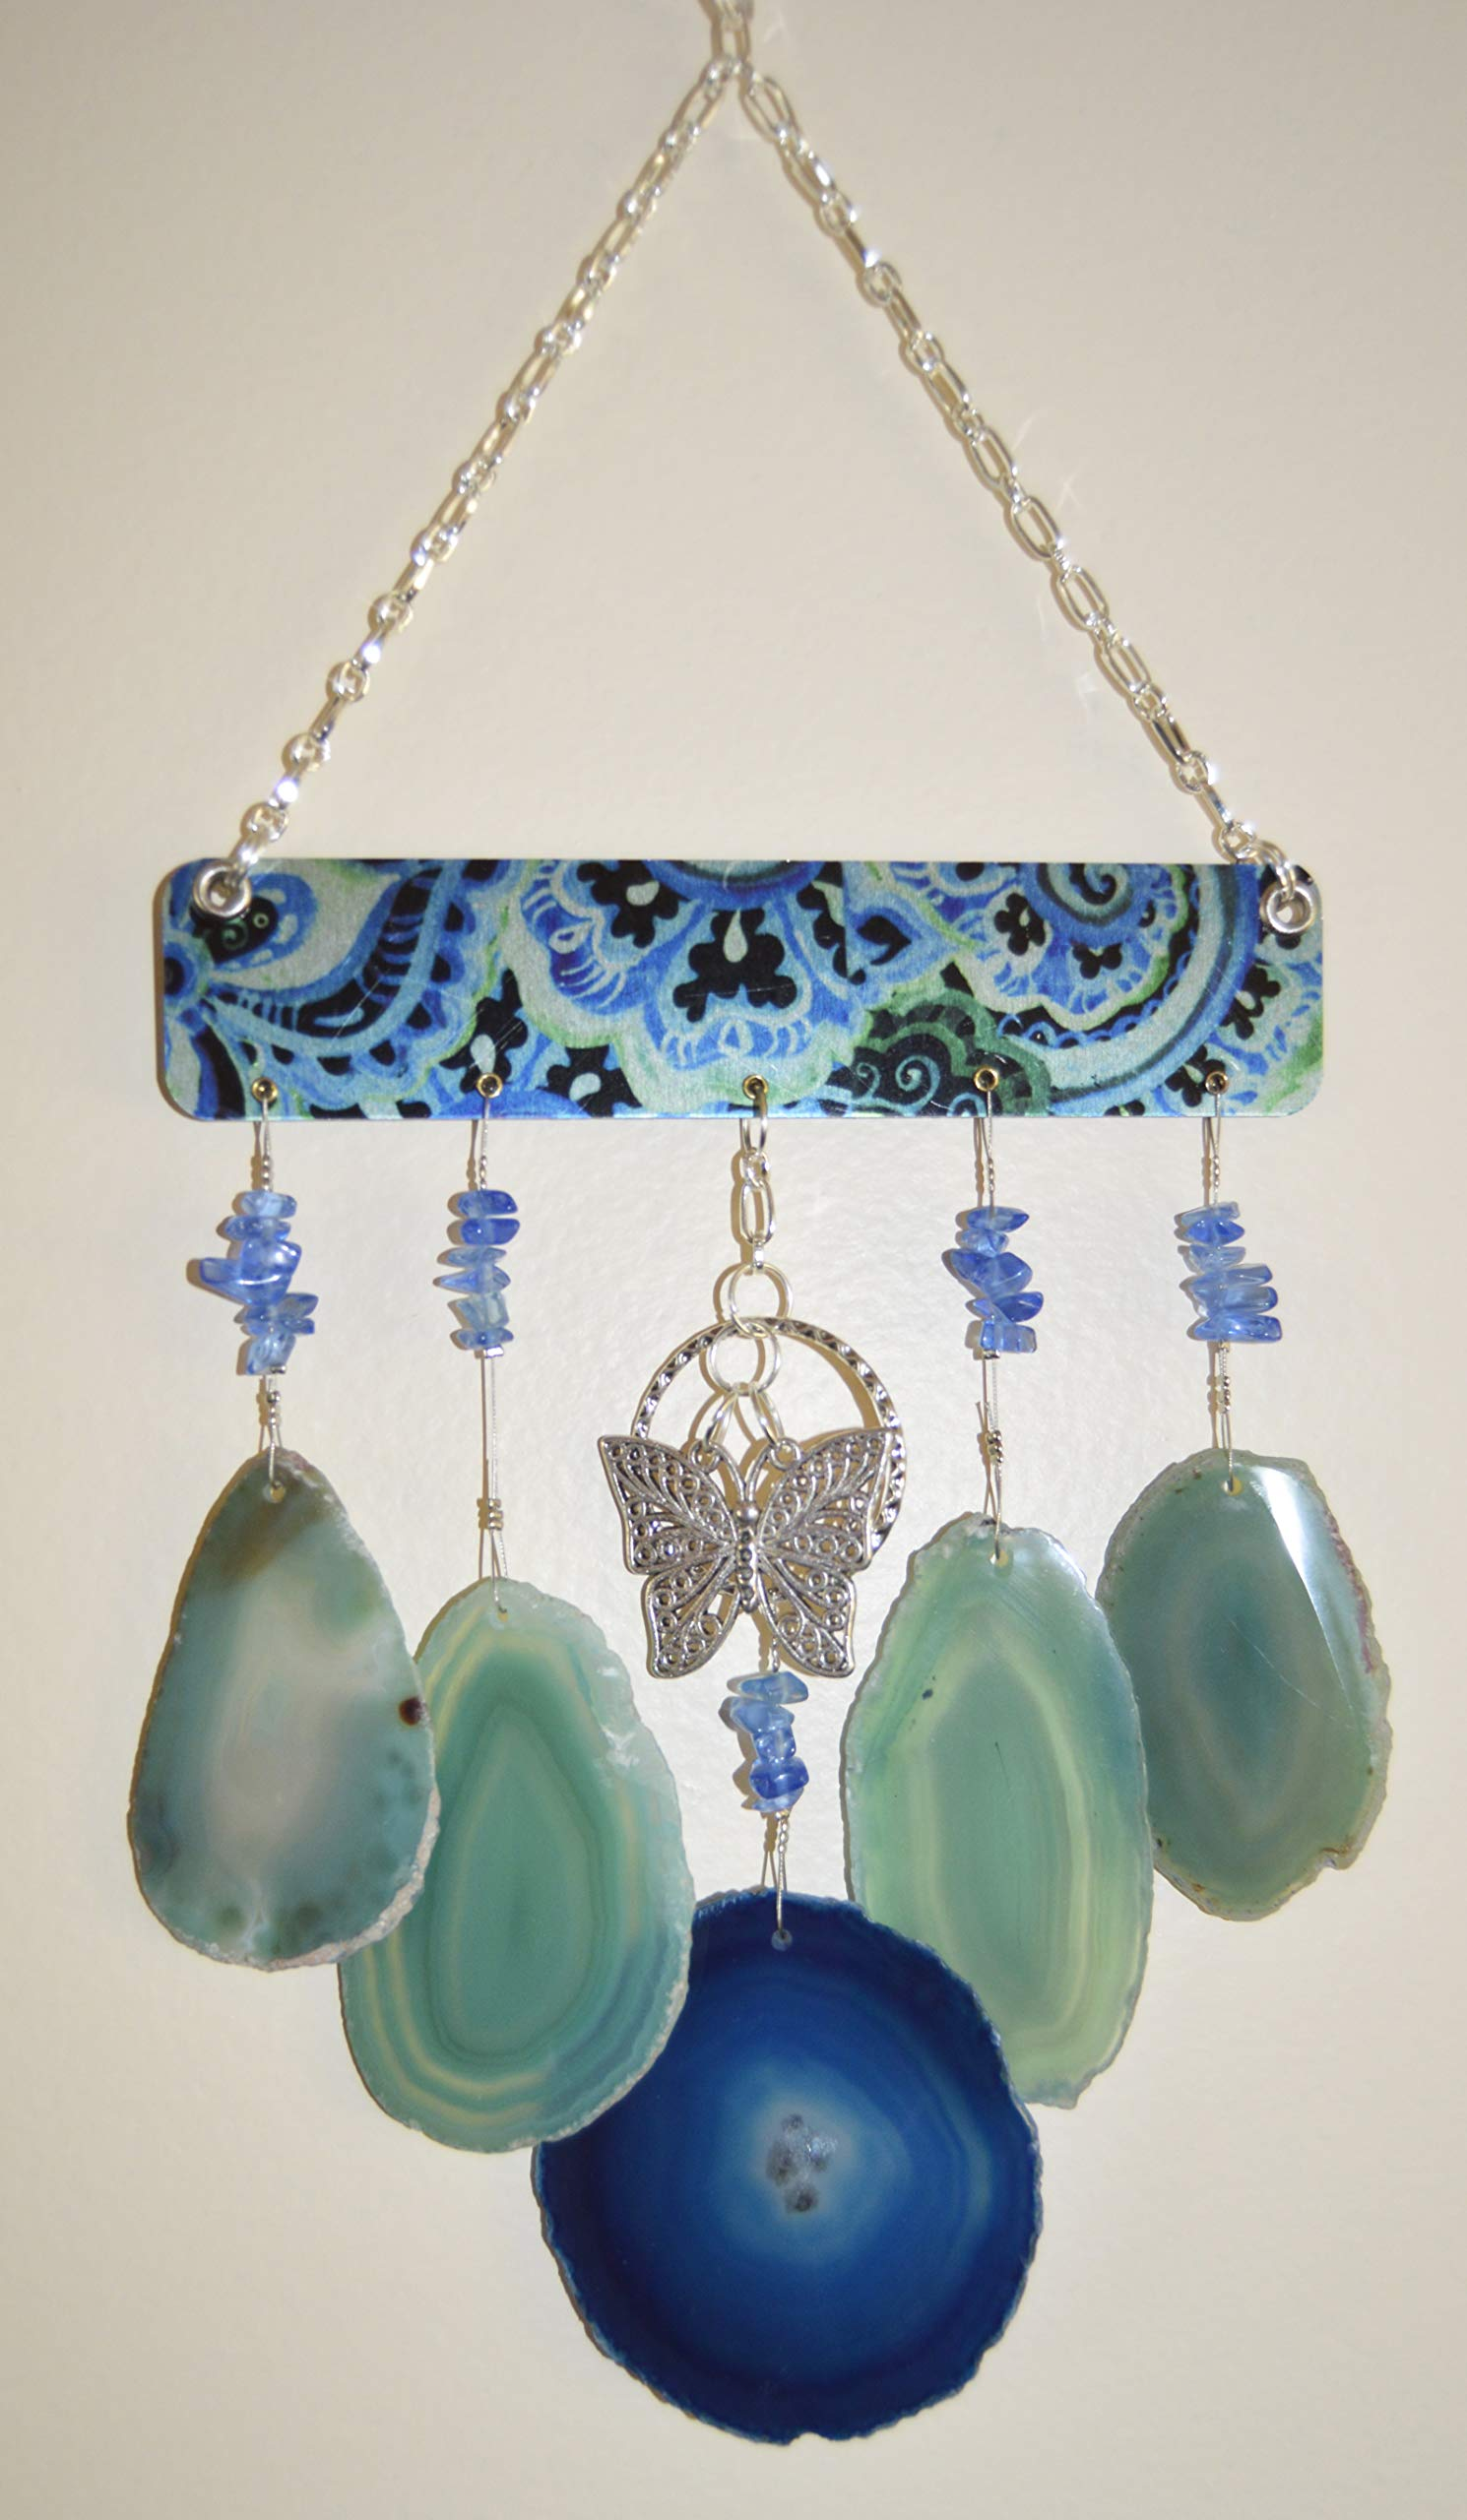 wind chime sliced Agate geode windchime stone sun catcher wind chime mobile window decor hanging silver butterflies & calming colors of agates